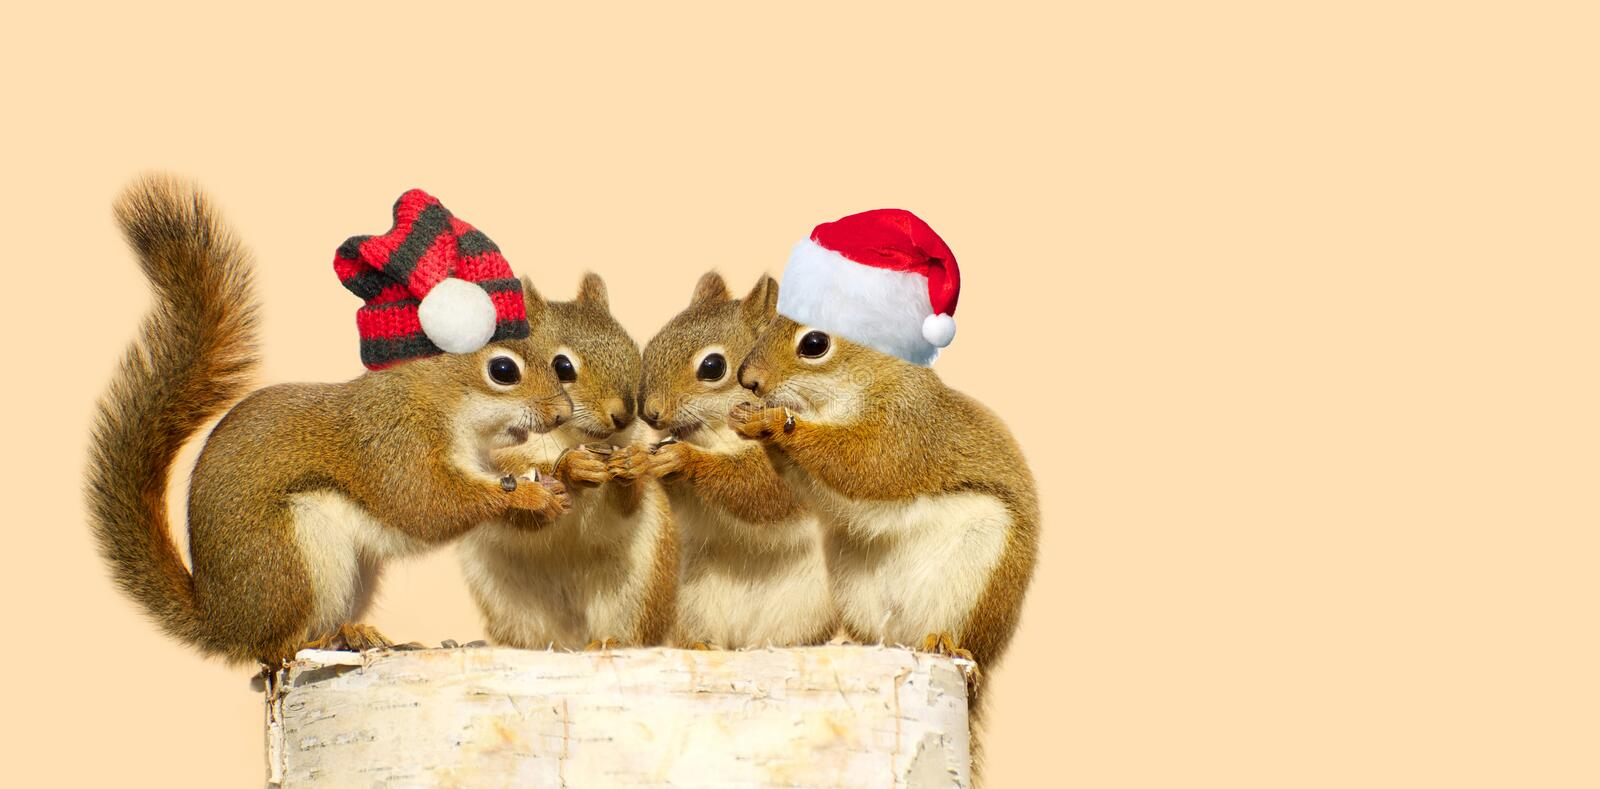 Christmas squirrels. royalty free stock image